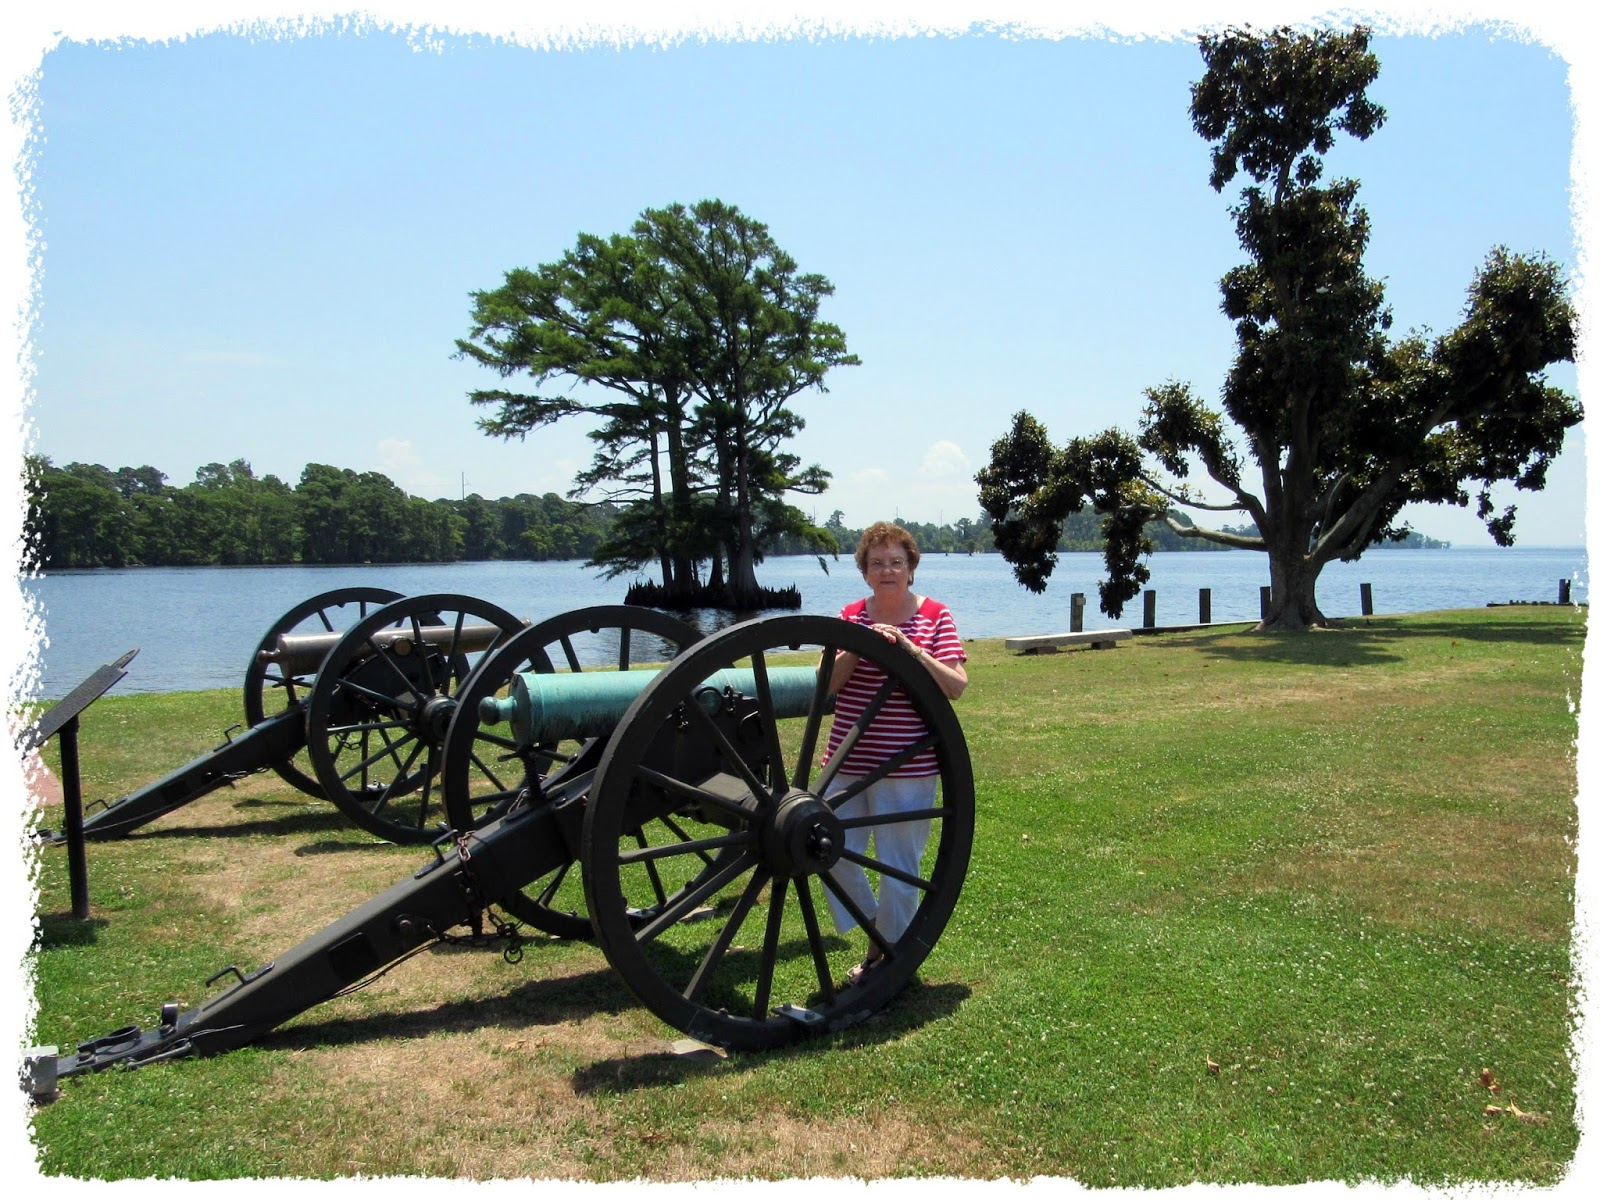 Living Life On Main Street A Visit To Edenton Part 2